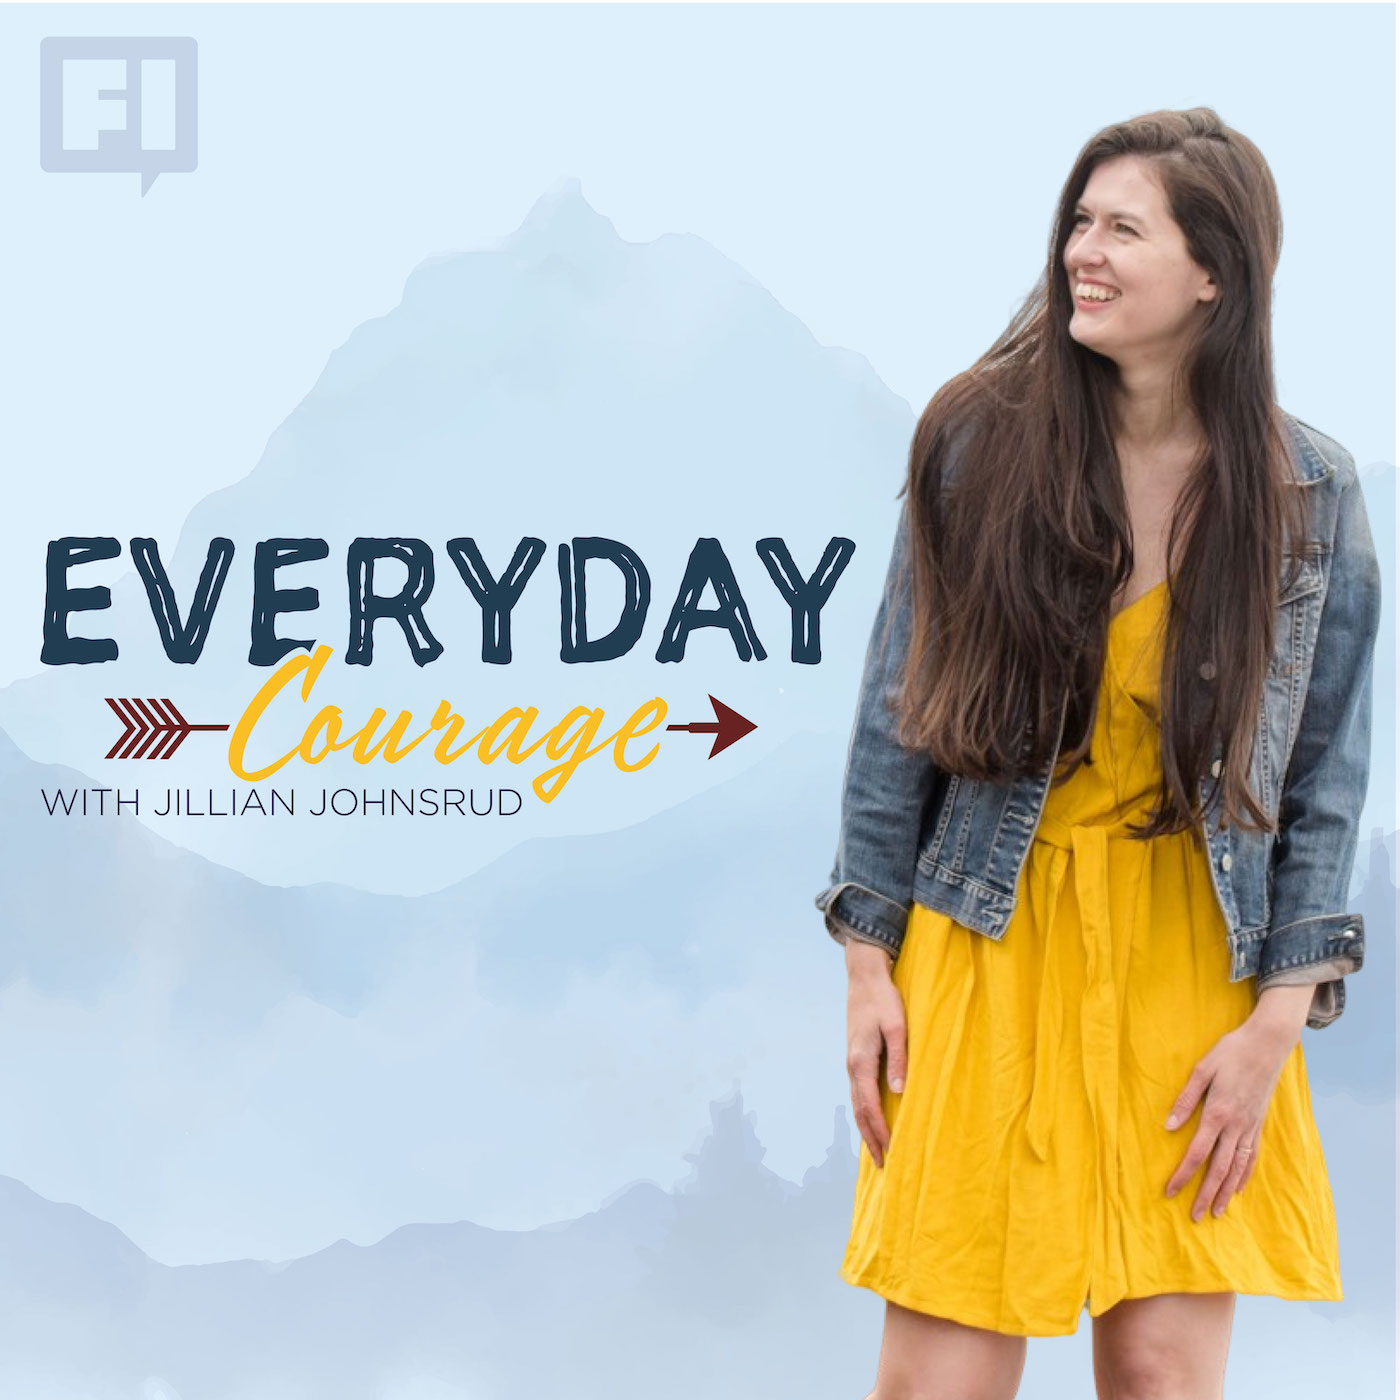 Everyday Courage with Jillian Johnsrud show art